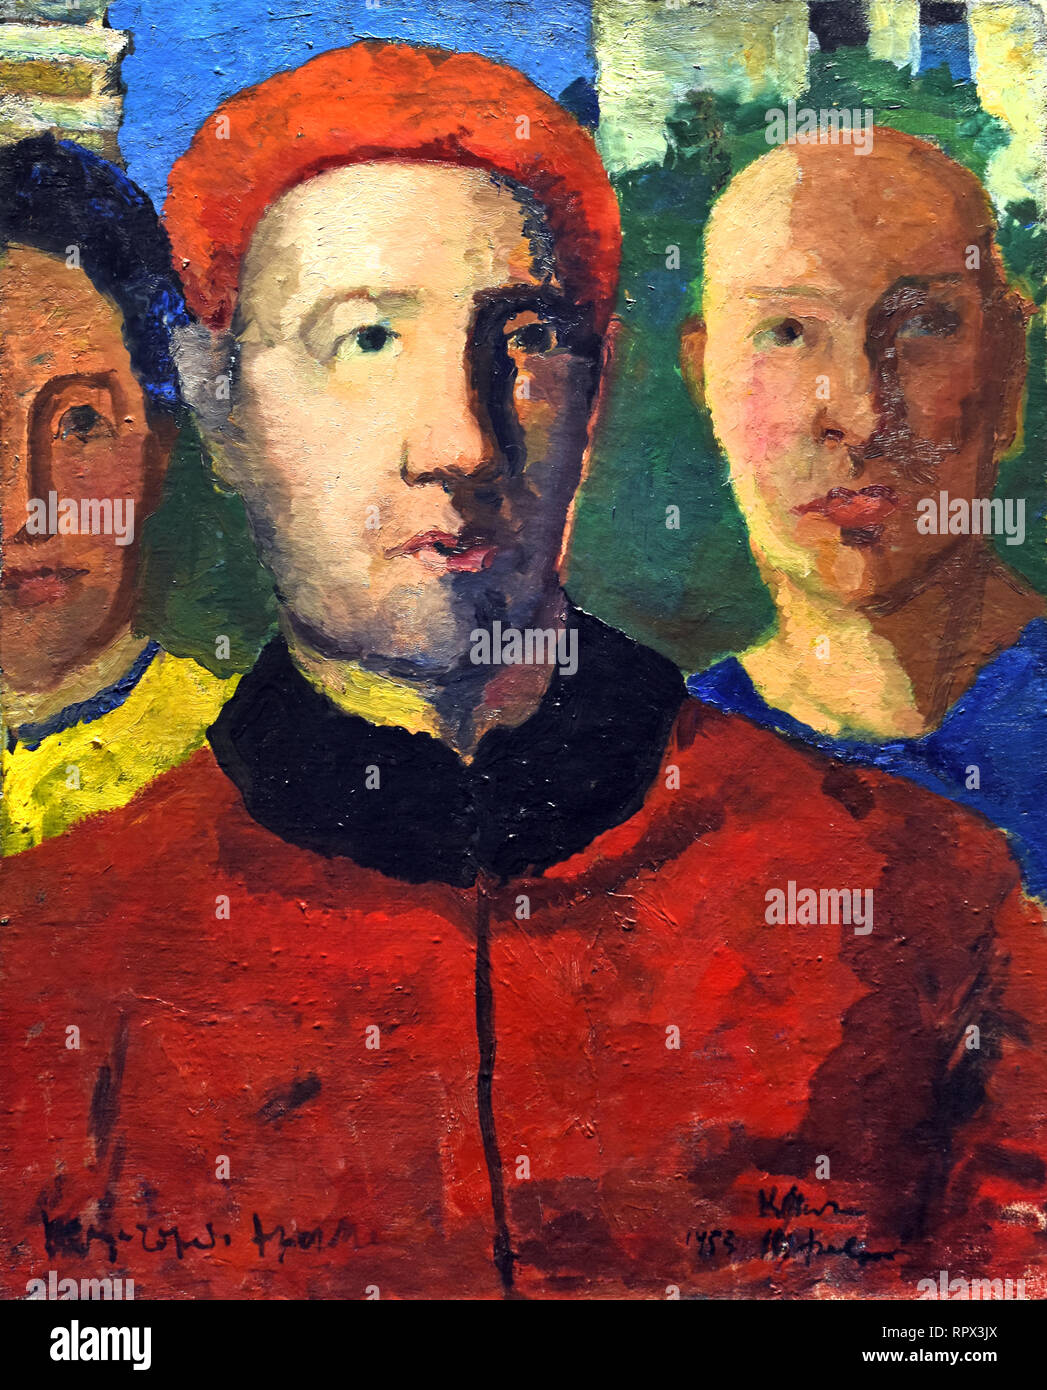 Triple Portrait ( Study for the painting Socialist City ) 1933 Kazimir Malevich 1878-1935 Russia, USSR, Russian, Federation, - Stock Image